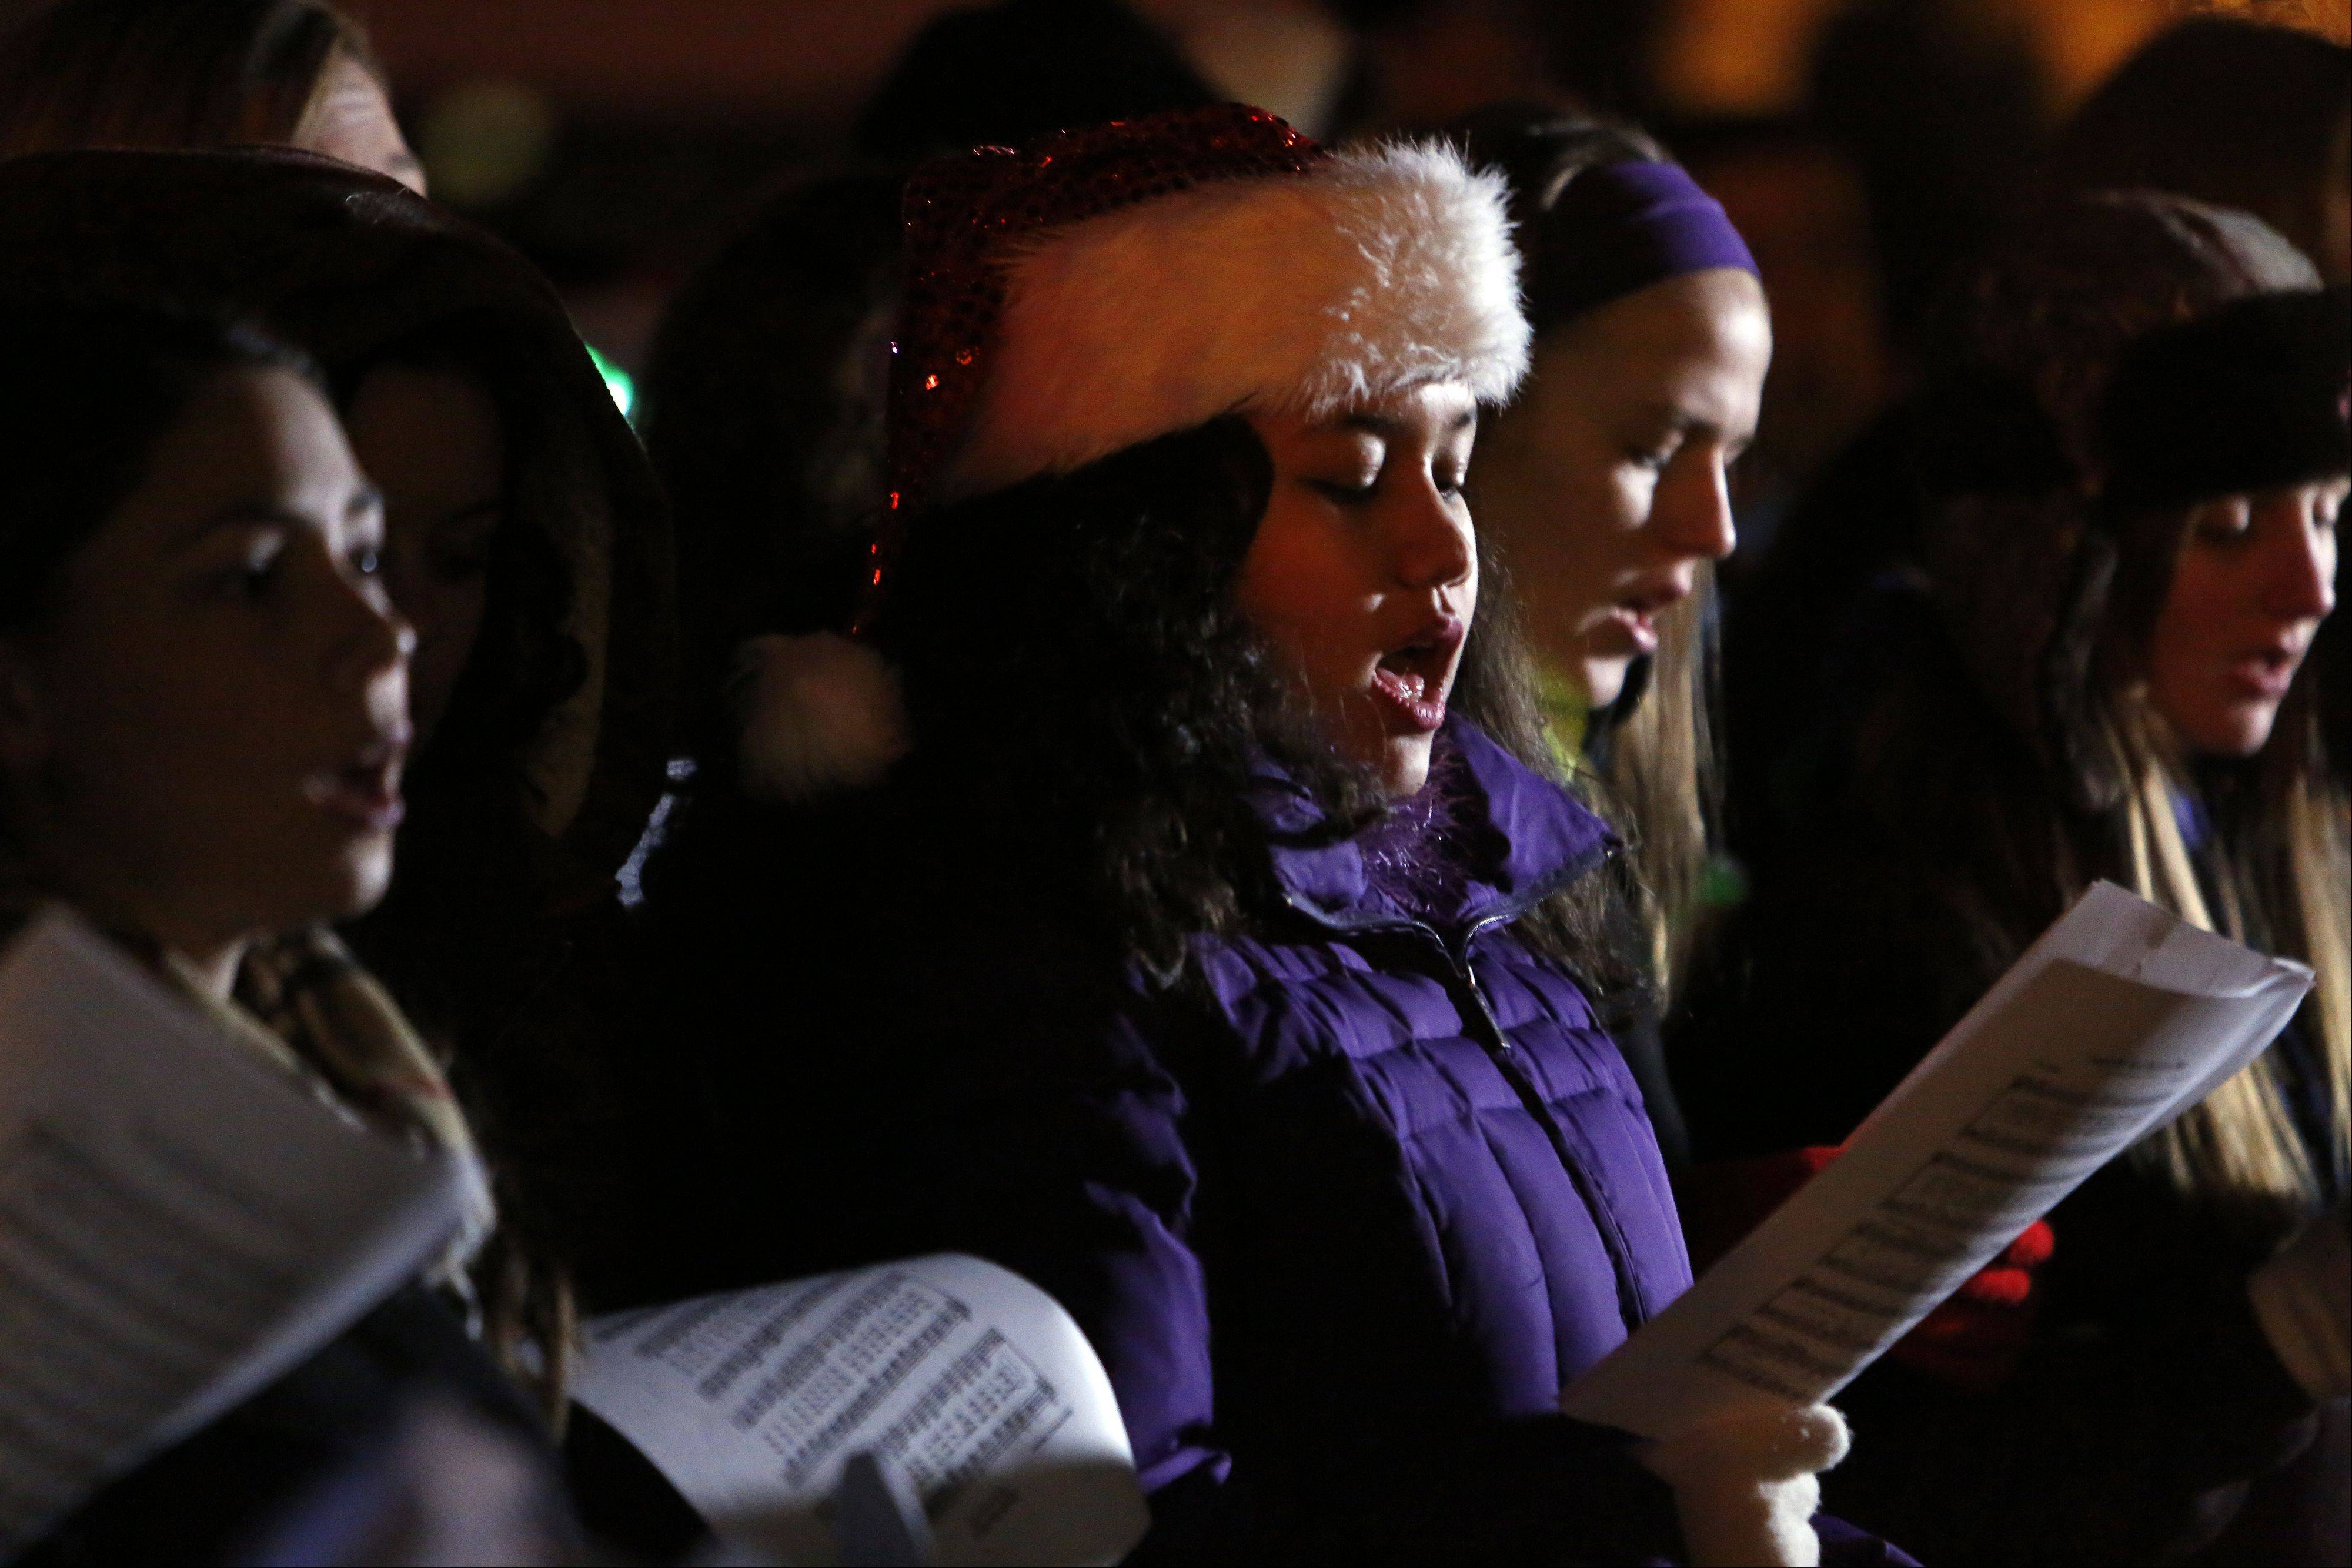 Amanda Vallejera, of the combined St. Charles North High School and St. Charles East choirs, belts out a Christmas tune.